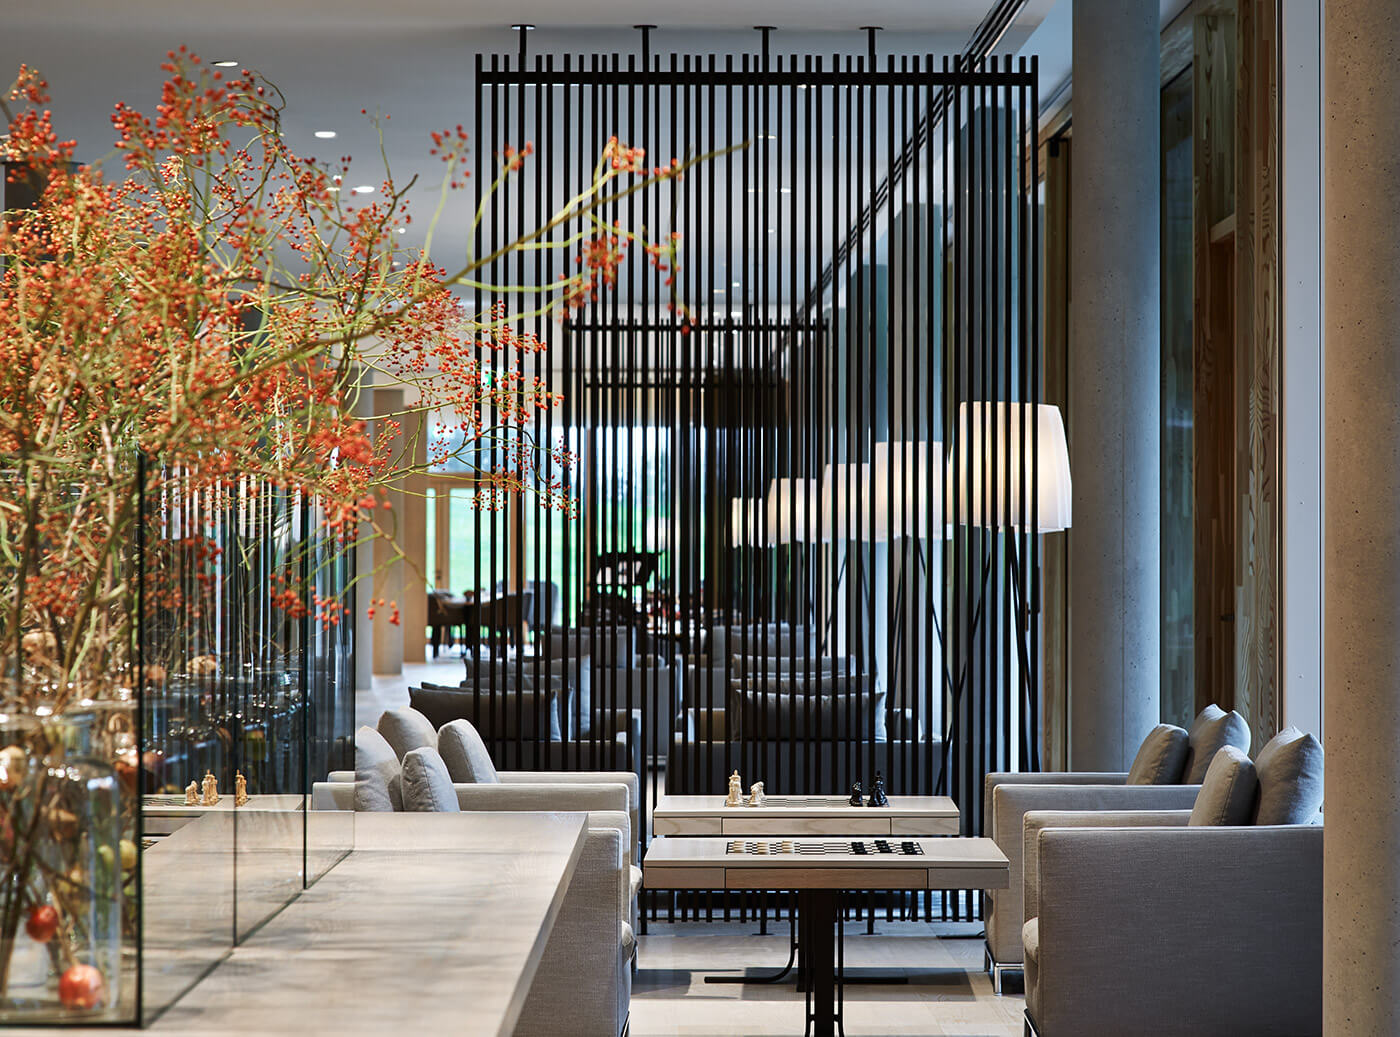 Picture of the Lobby at the Lanserhof Resort Tegernsee